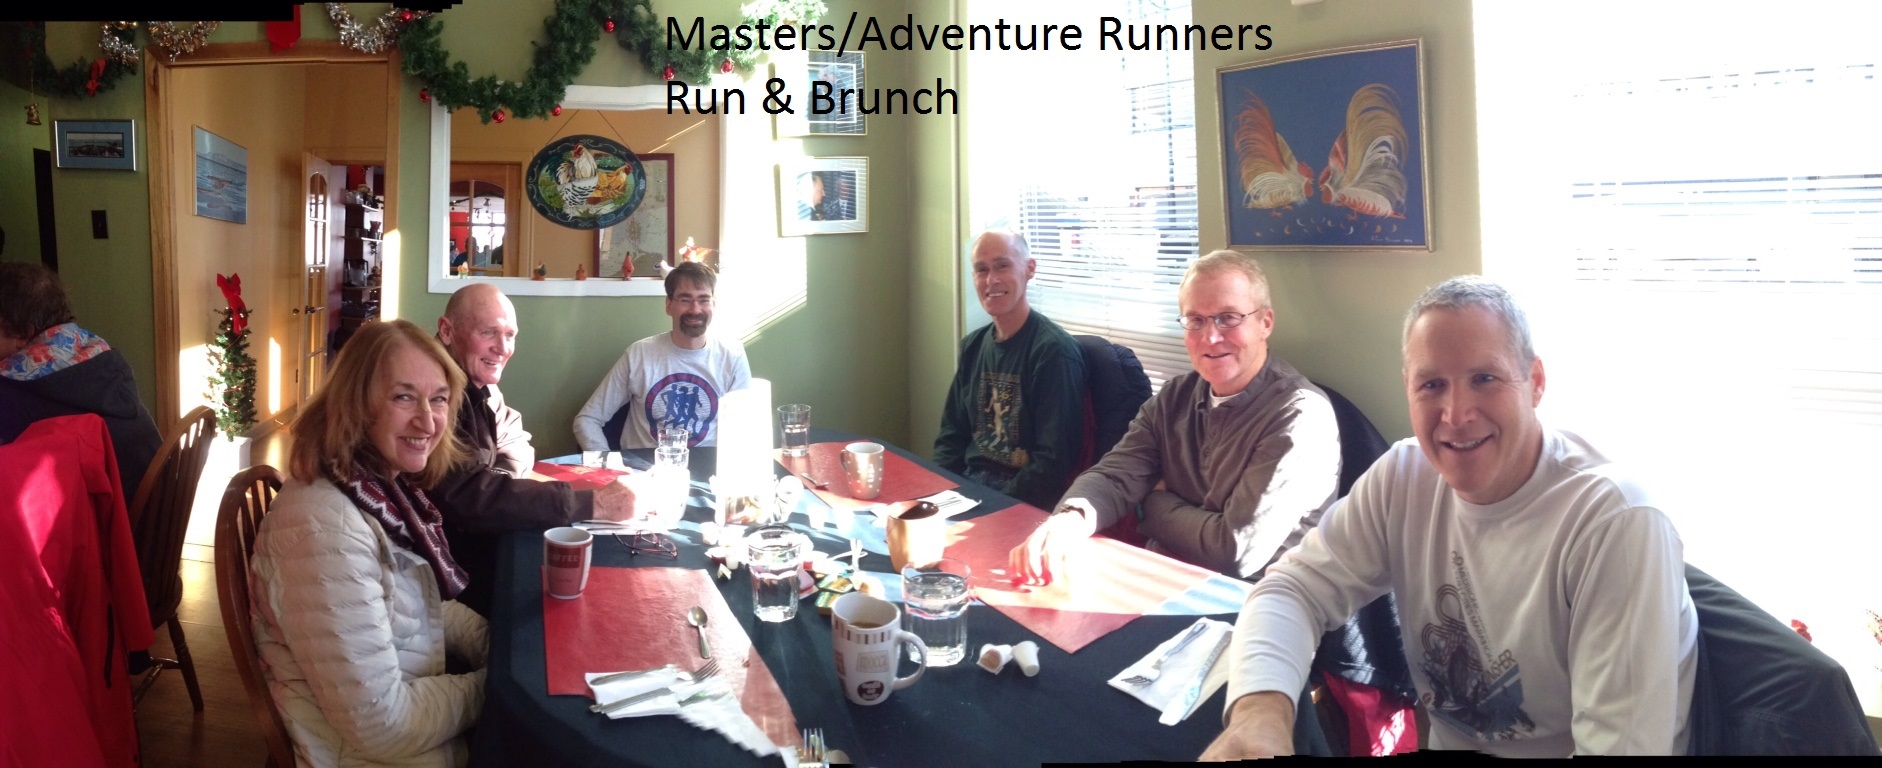 Run & Brunch 4 edited.jpg